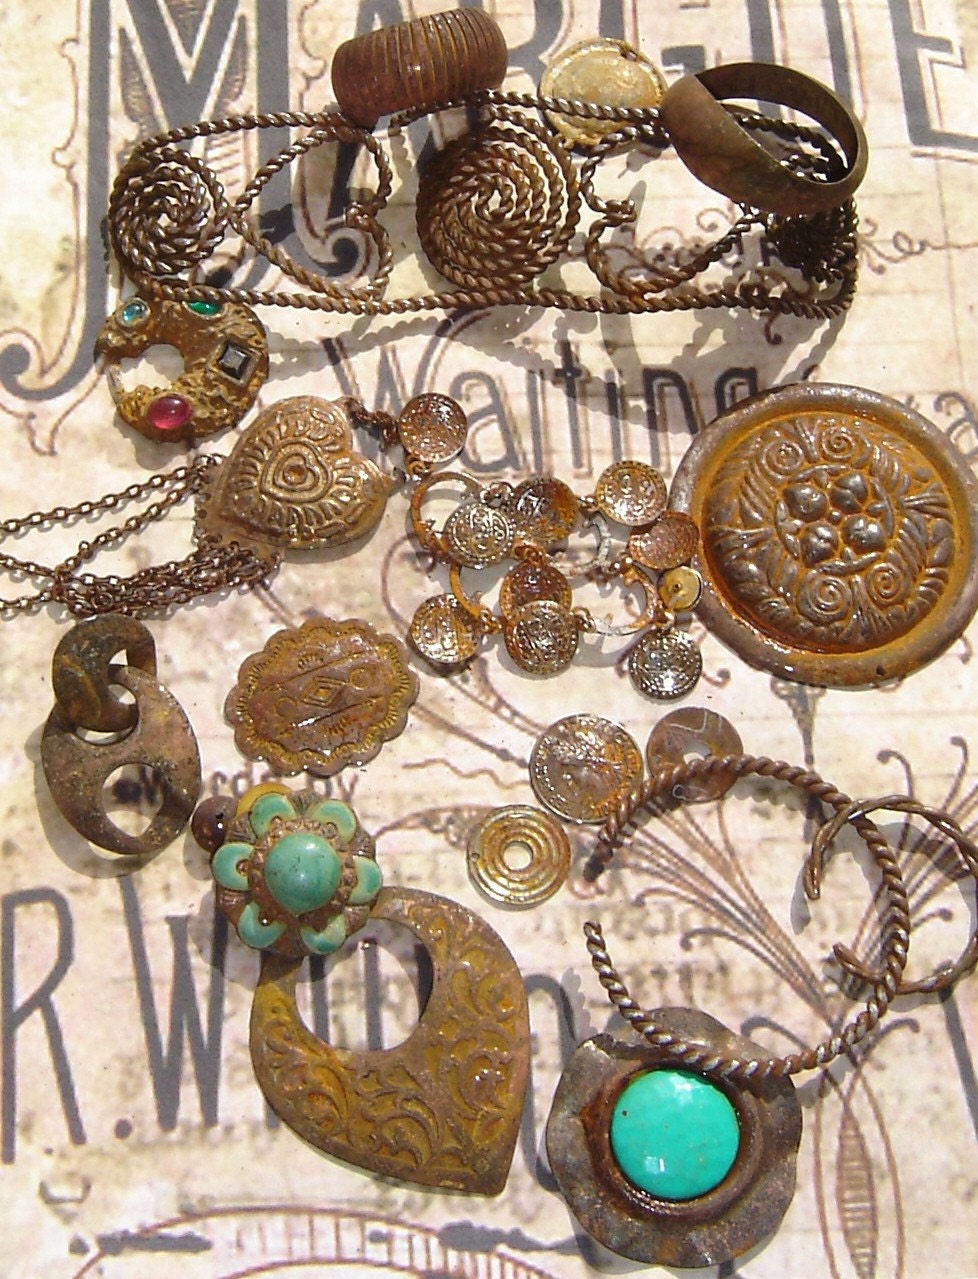 LOT OF RUSTED  JEWELRY PIECES GREAT FOR ANY ALTERED ART, MIXED MEDIA, ASSEMBLAGE OR STEAM PUNK PROJECT